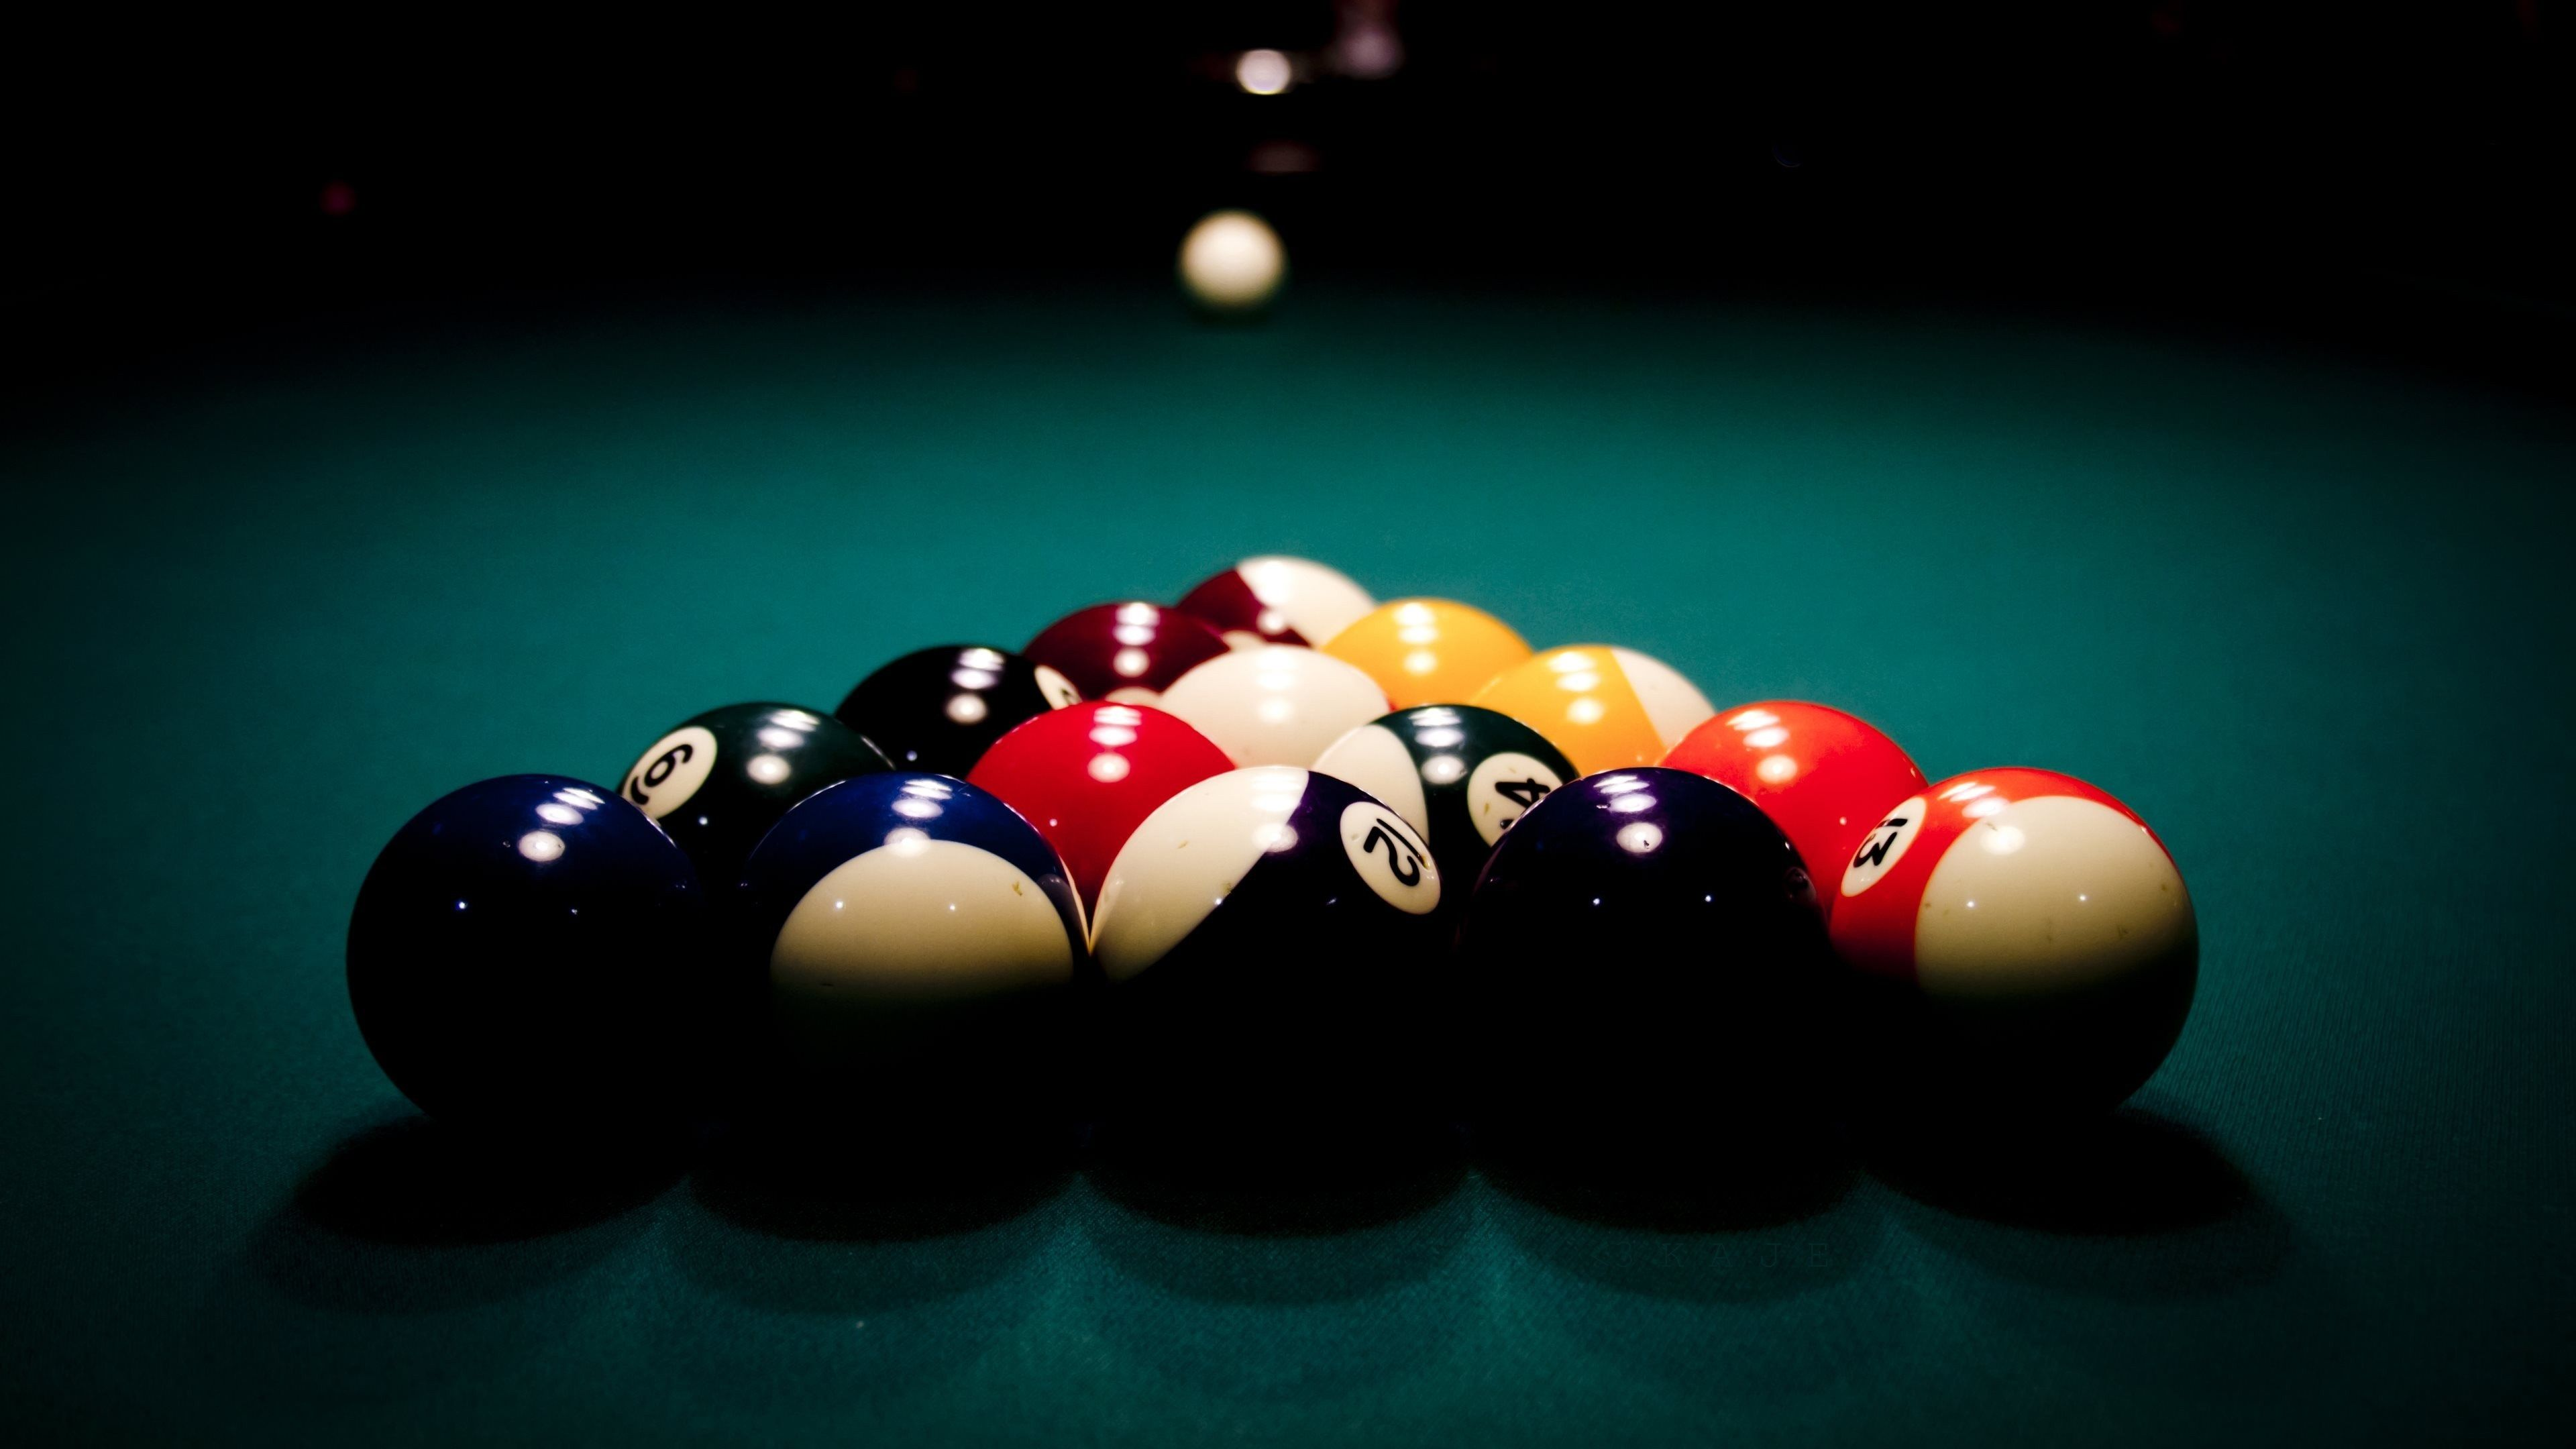 Sports Wallpaper Billiard Iphone Wallpapers Hd Resolution: 3840x2160 Billard 4k Wallpaper For Downloading